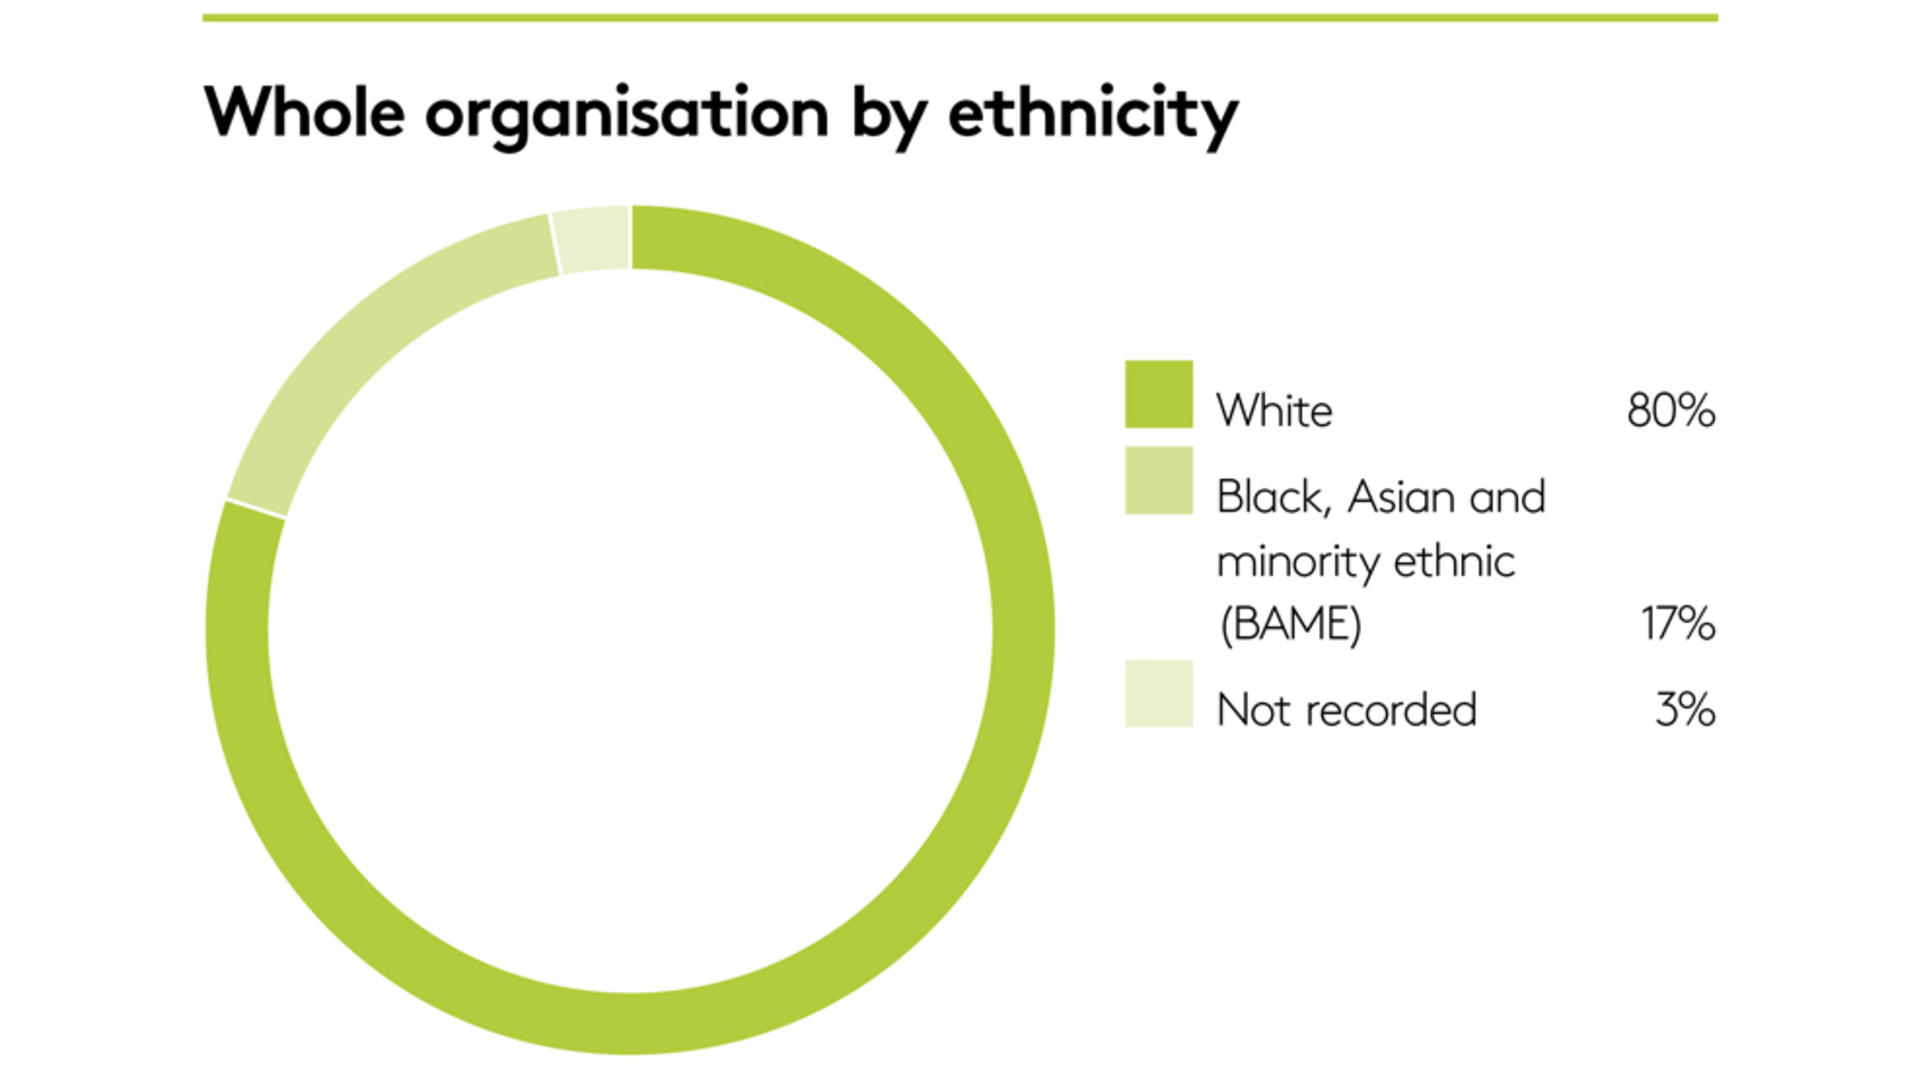 Whole organisation by ethnicity